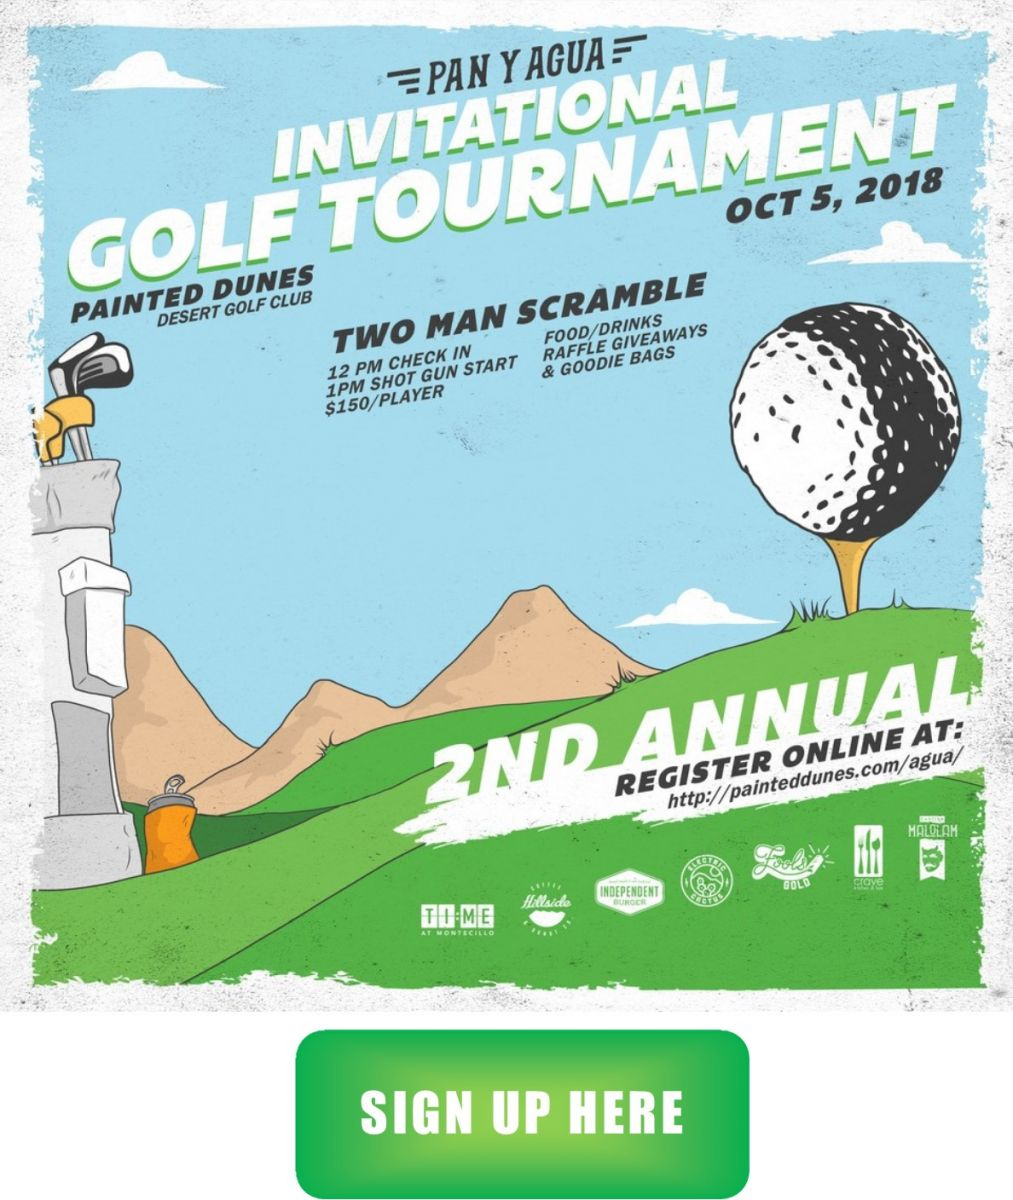 Pan y Agua Invitational Golf Tournament flyer